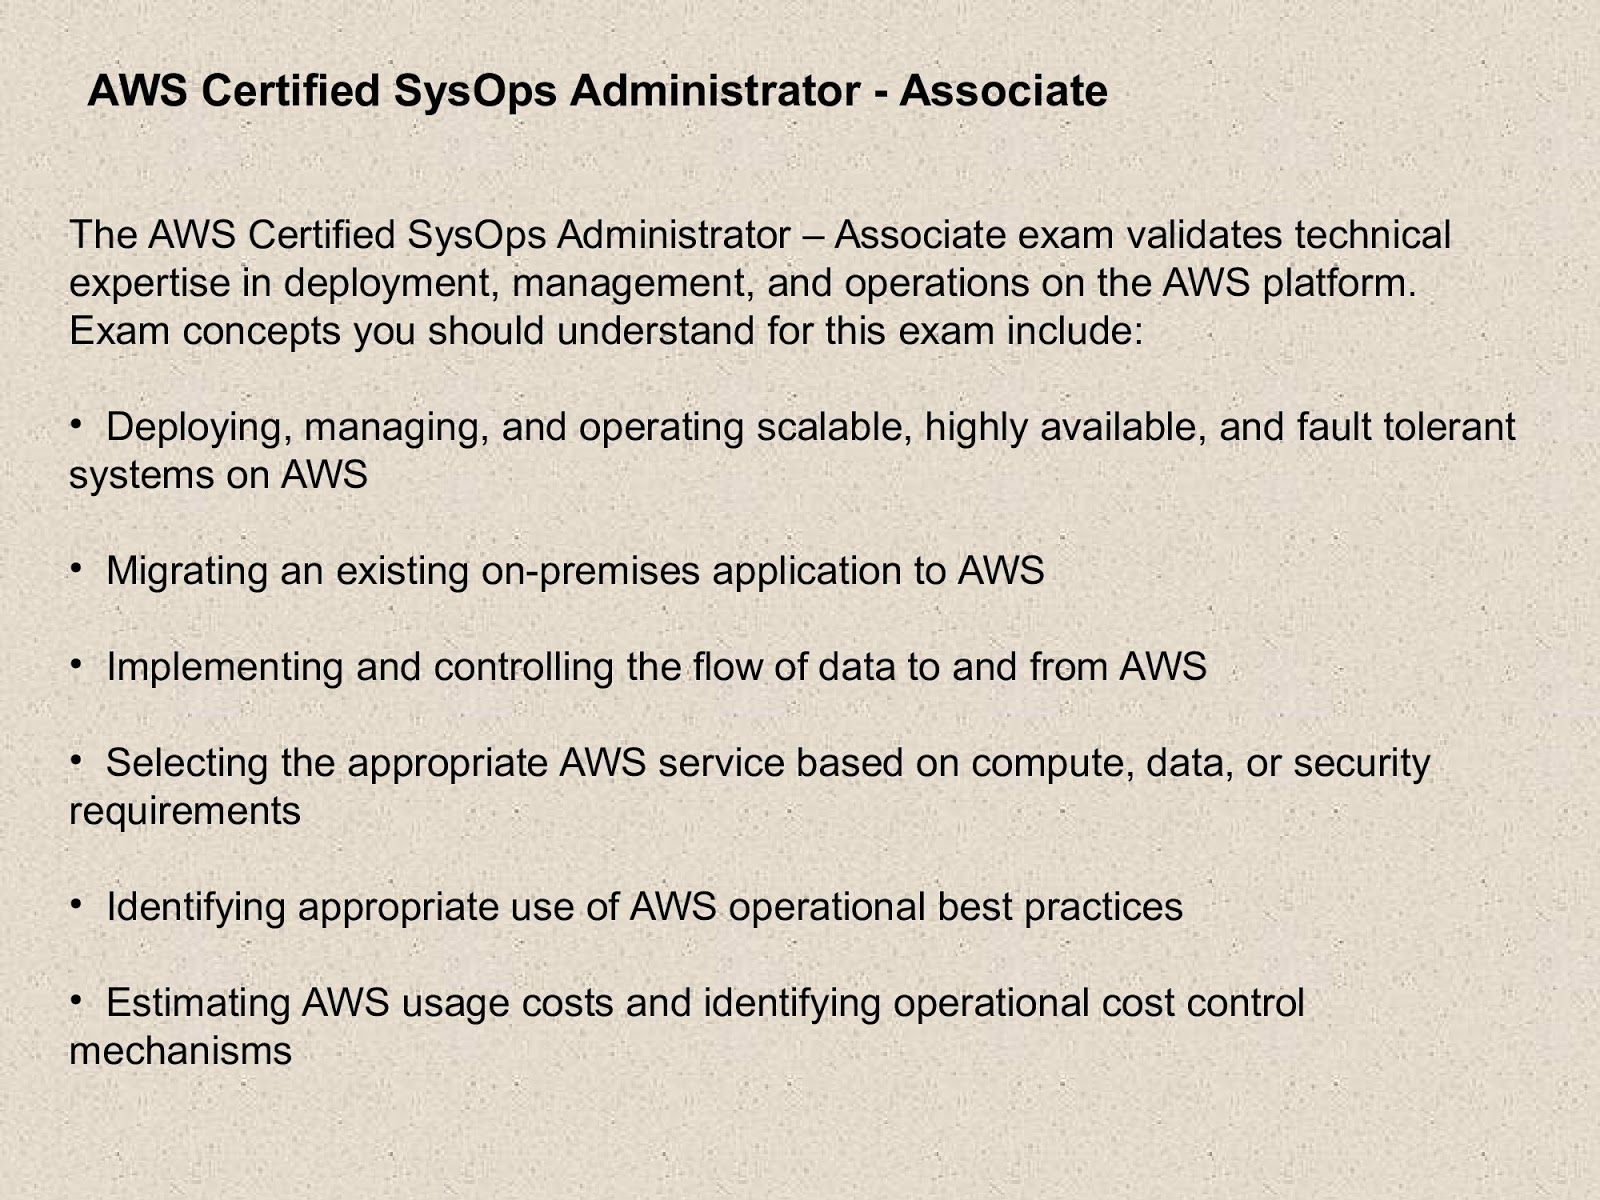 Amazon Aws Sysops Exam Dumps Question Aws Certified Sysops